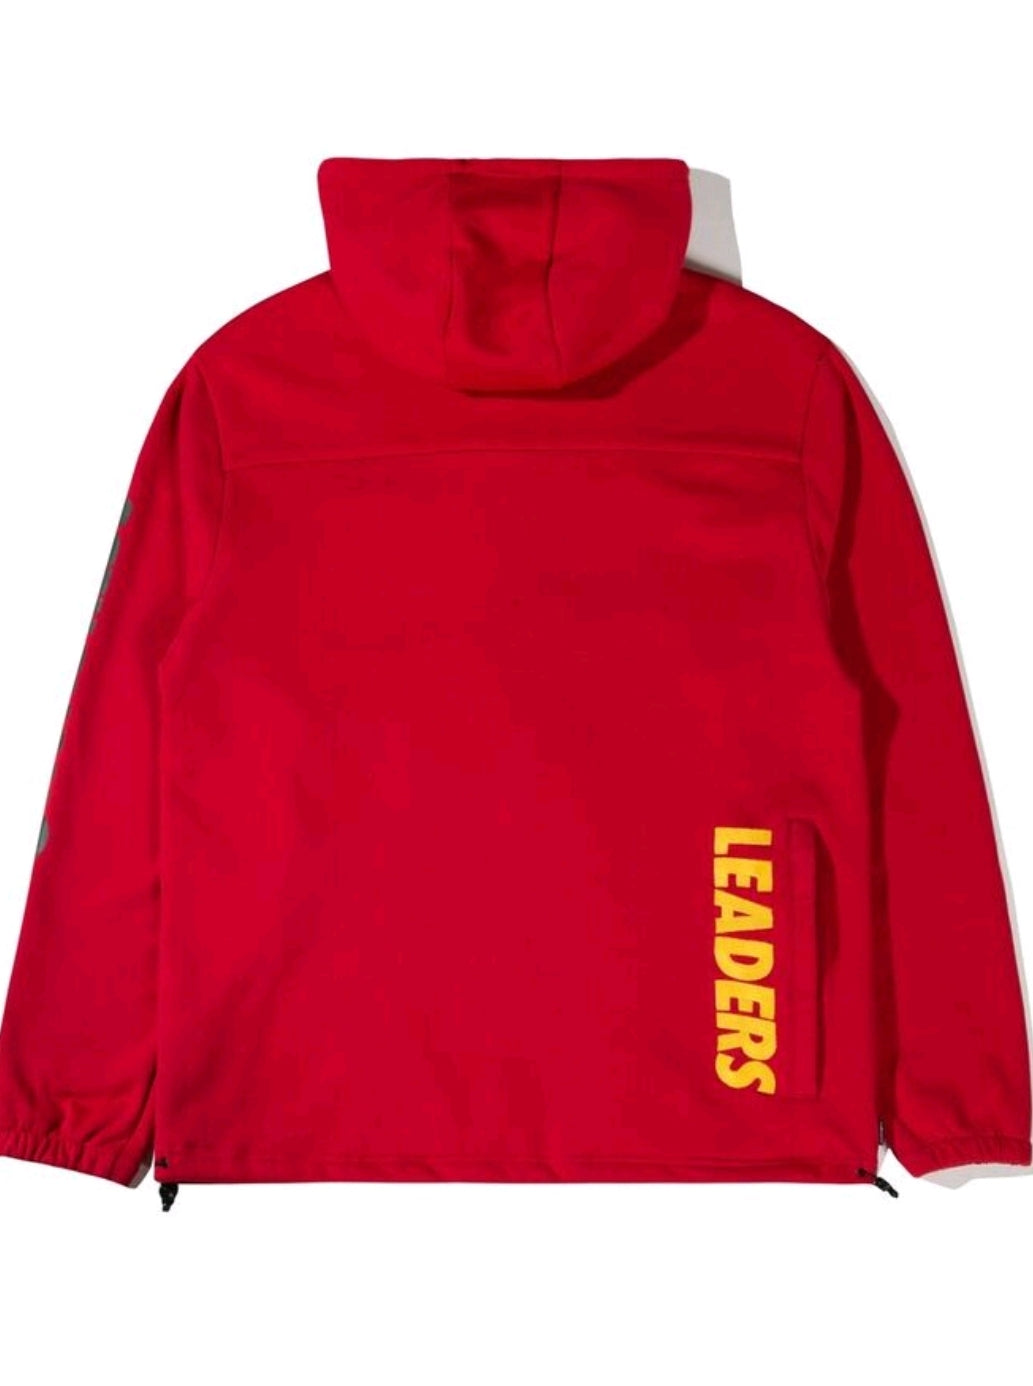 Anorak Fleece Pullover - leaders1354